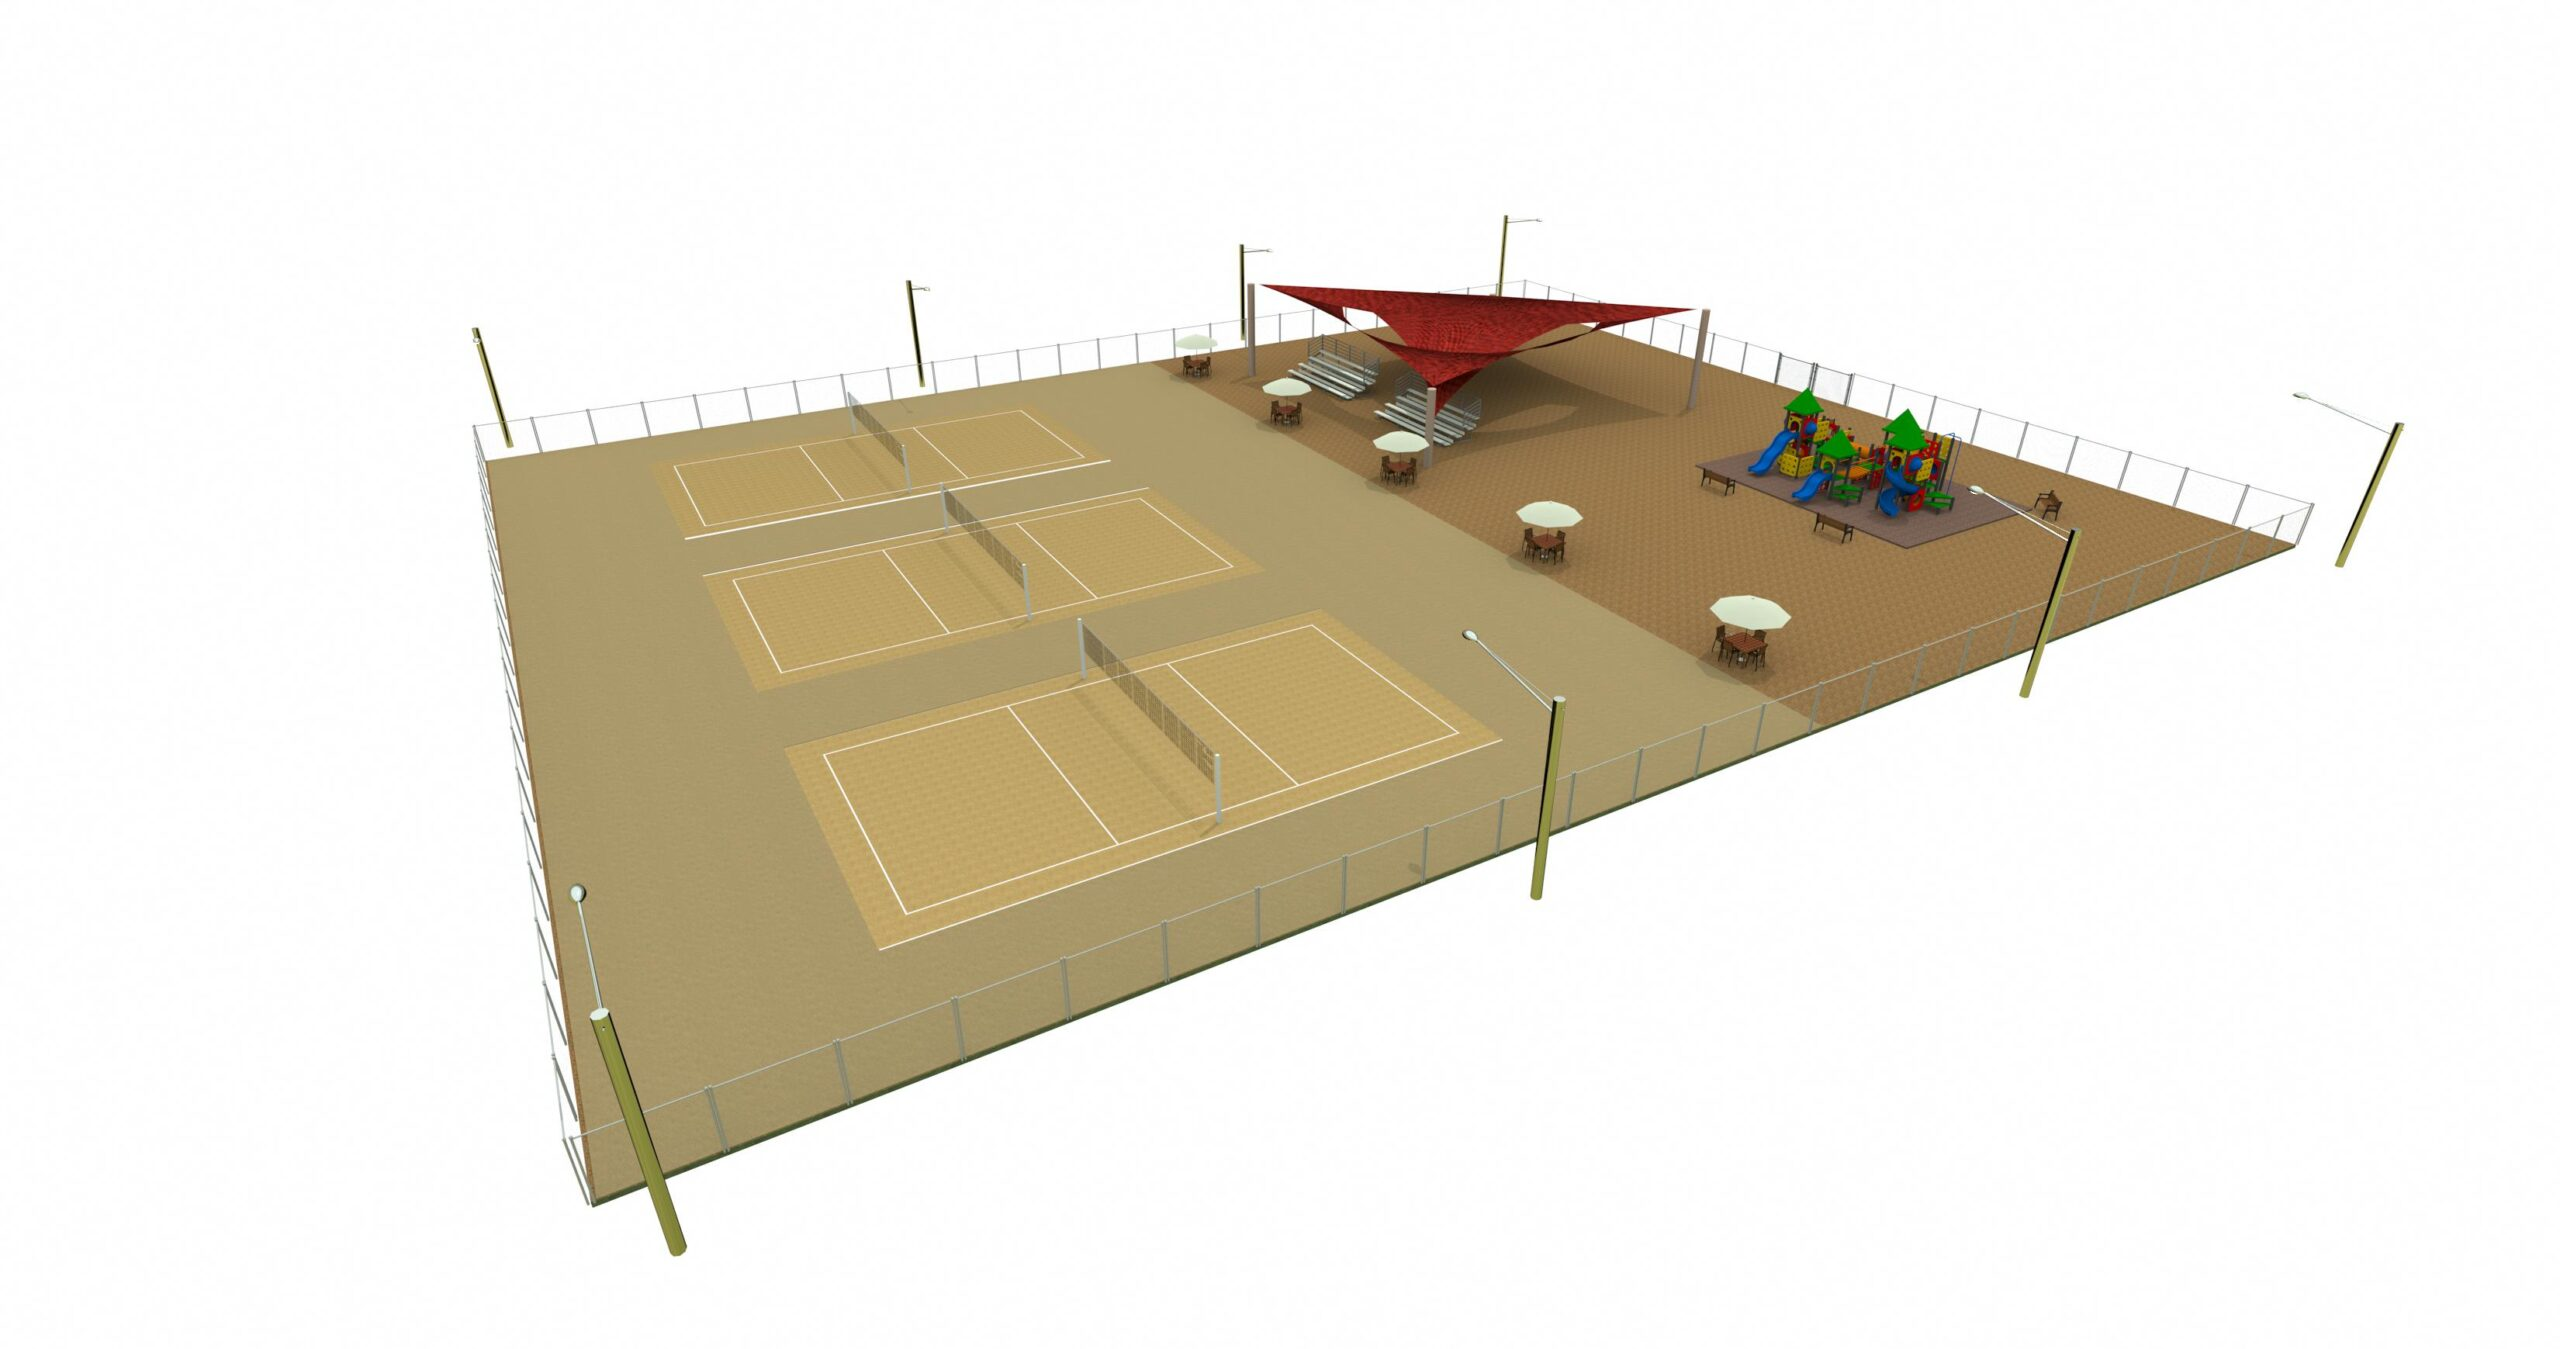 Sand-Courts-scaled